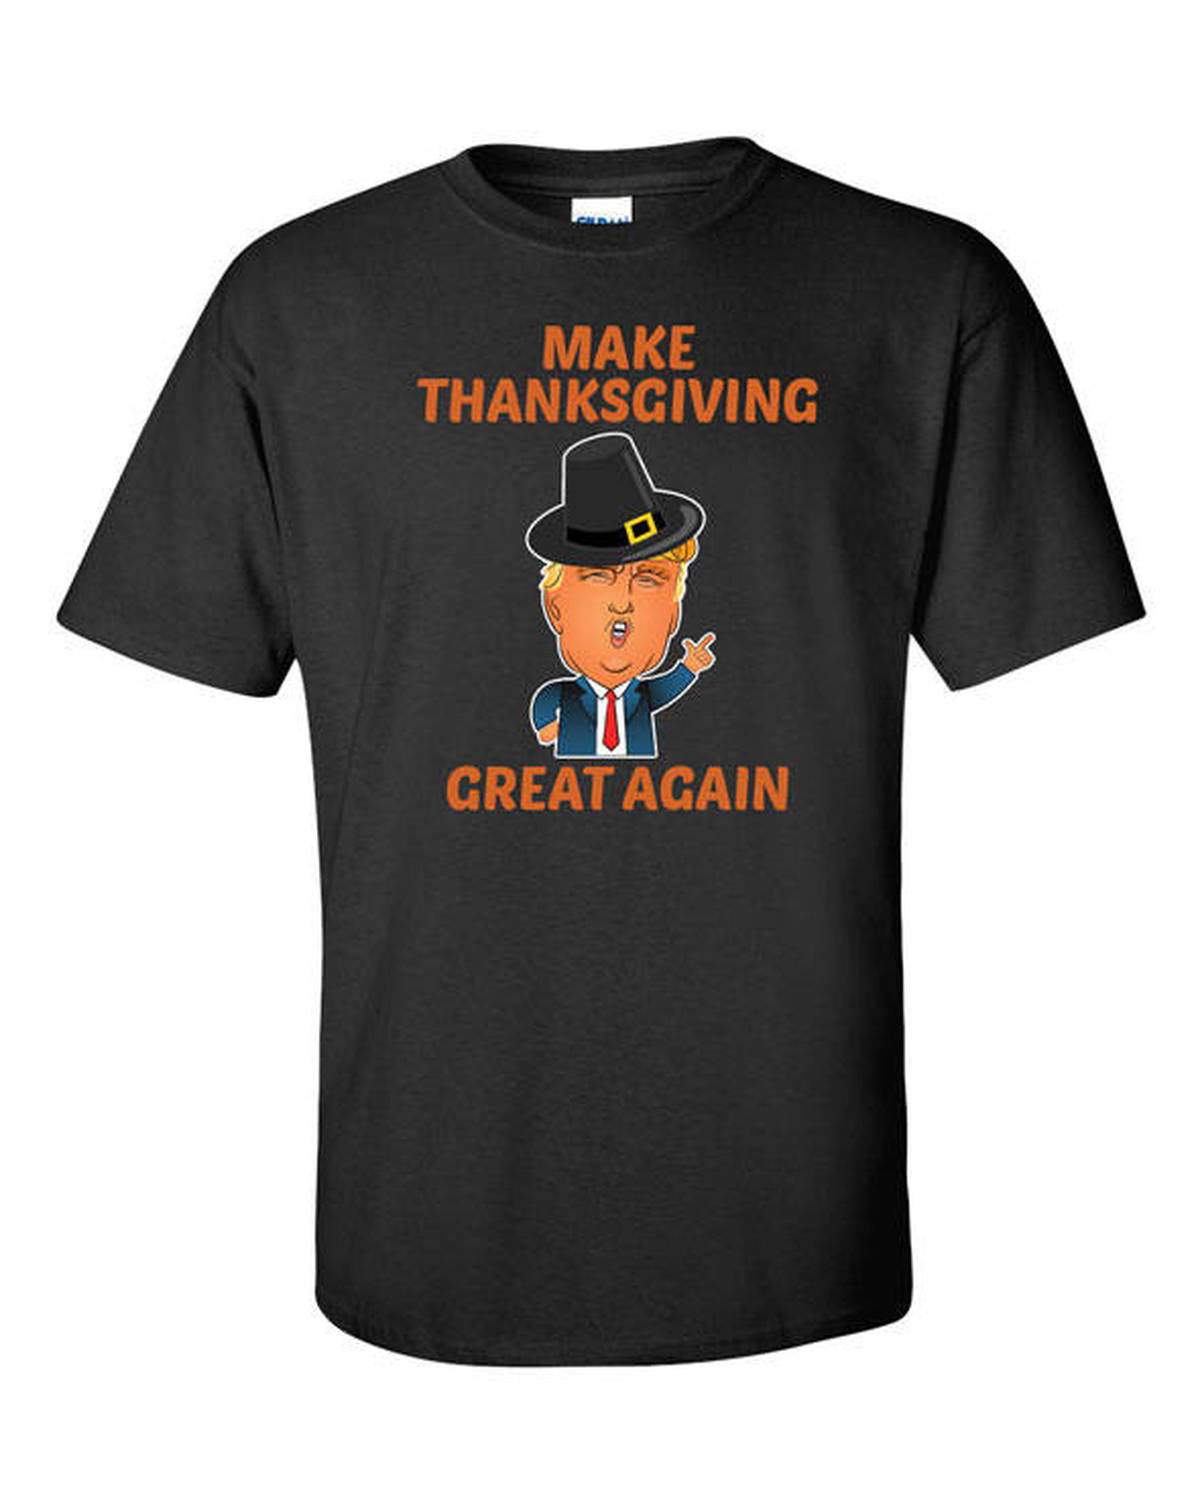 Donald Trump Funny Humor Joke Thanksgiving T shirt Make Thanksgiving Great Again President Holiday Outfit Fall Shirt image